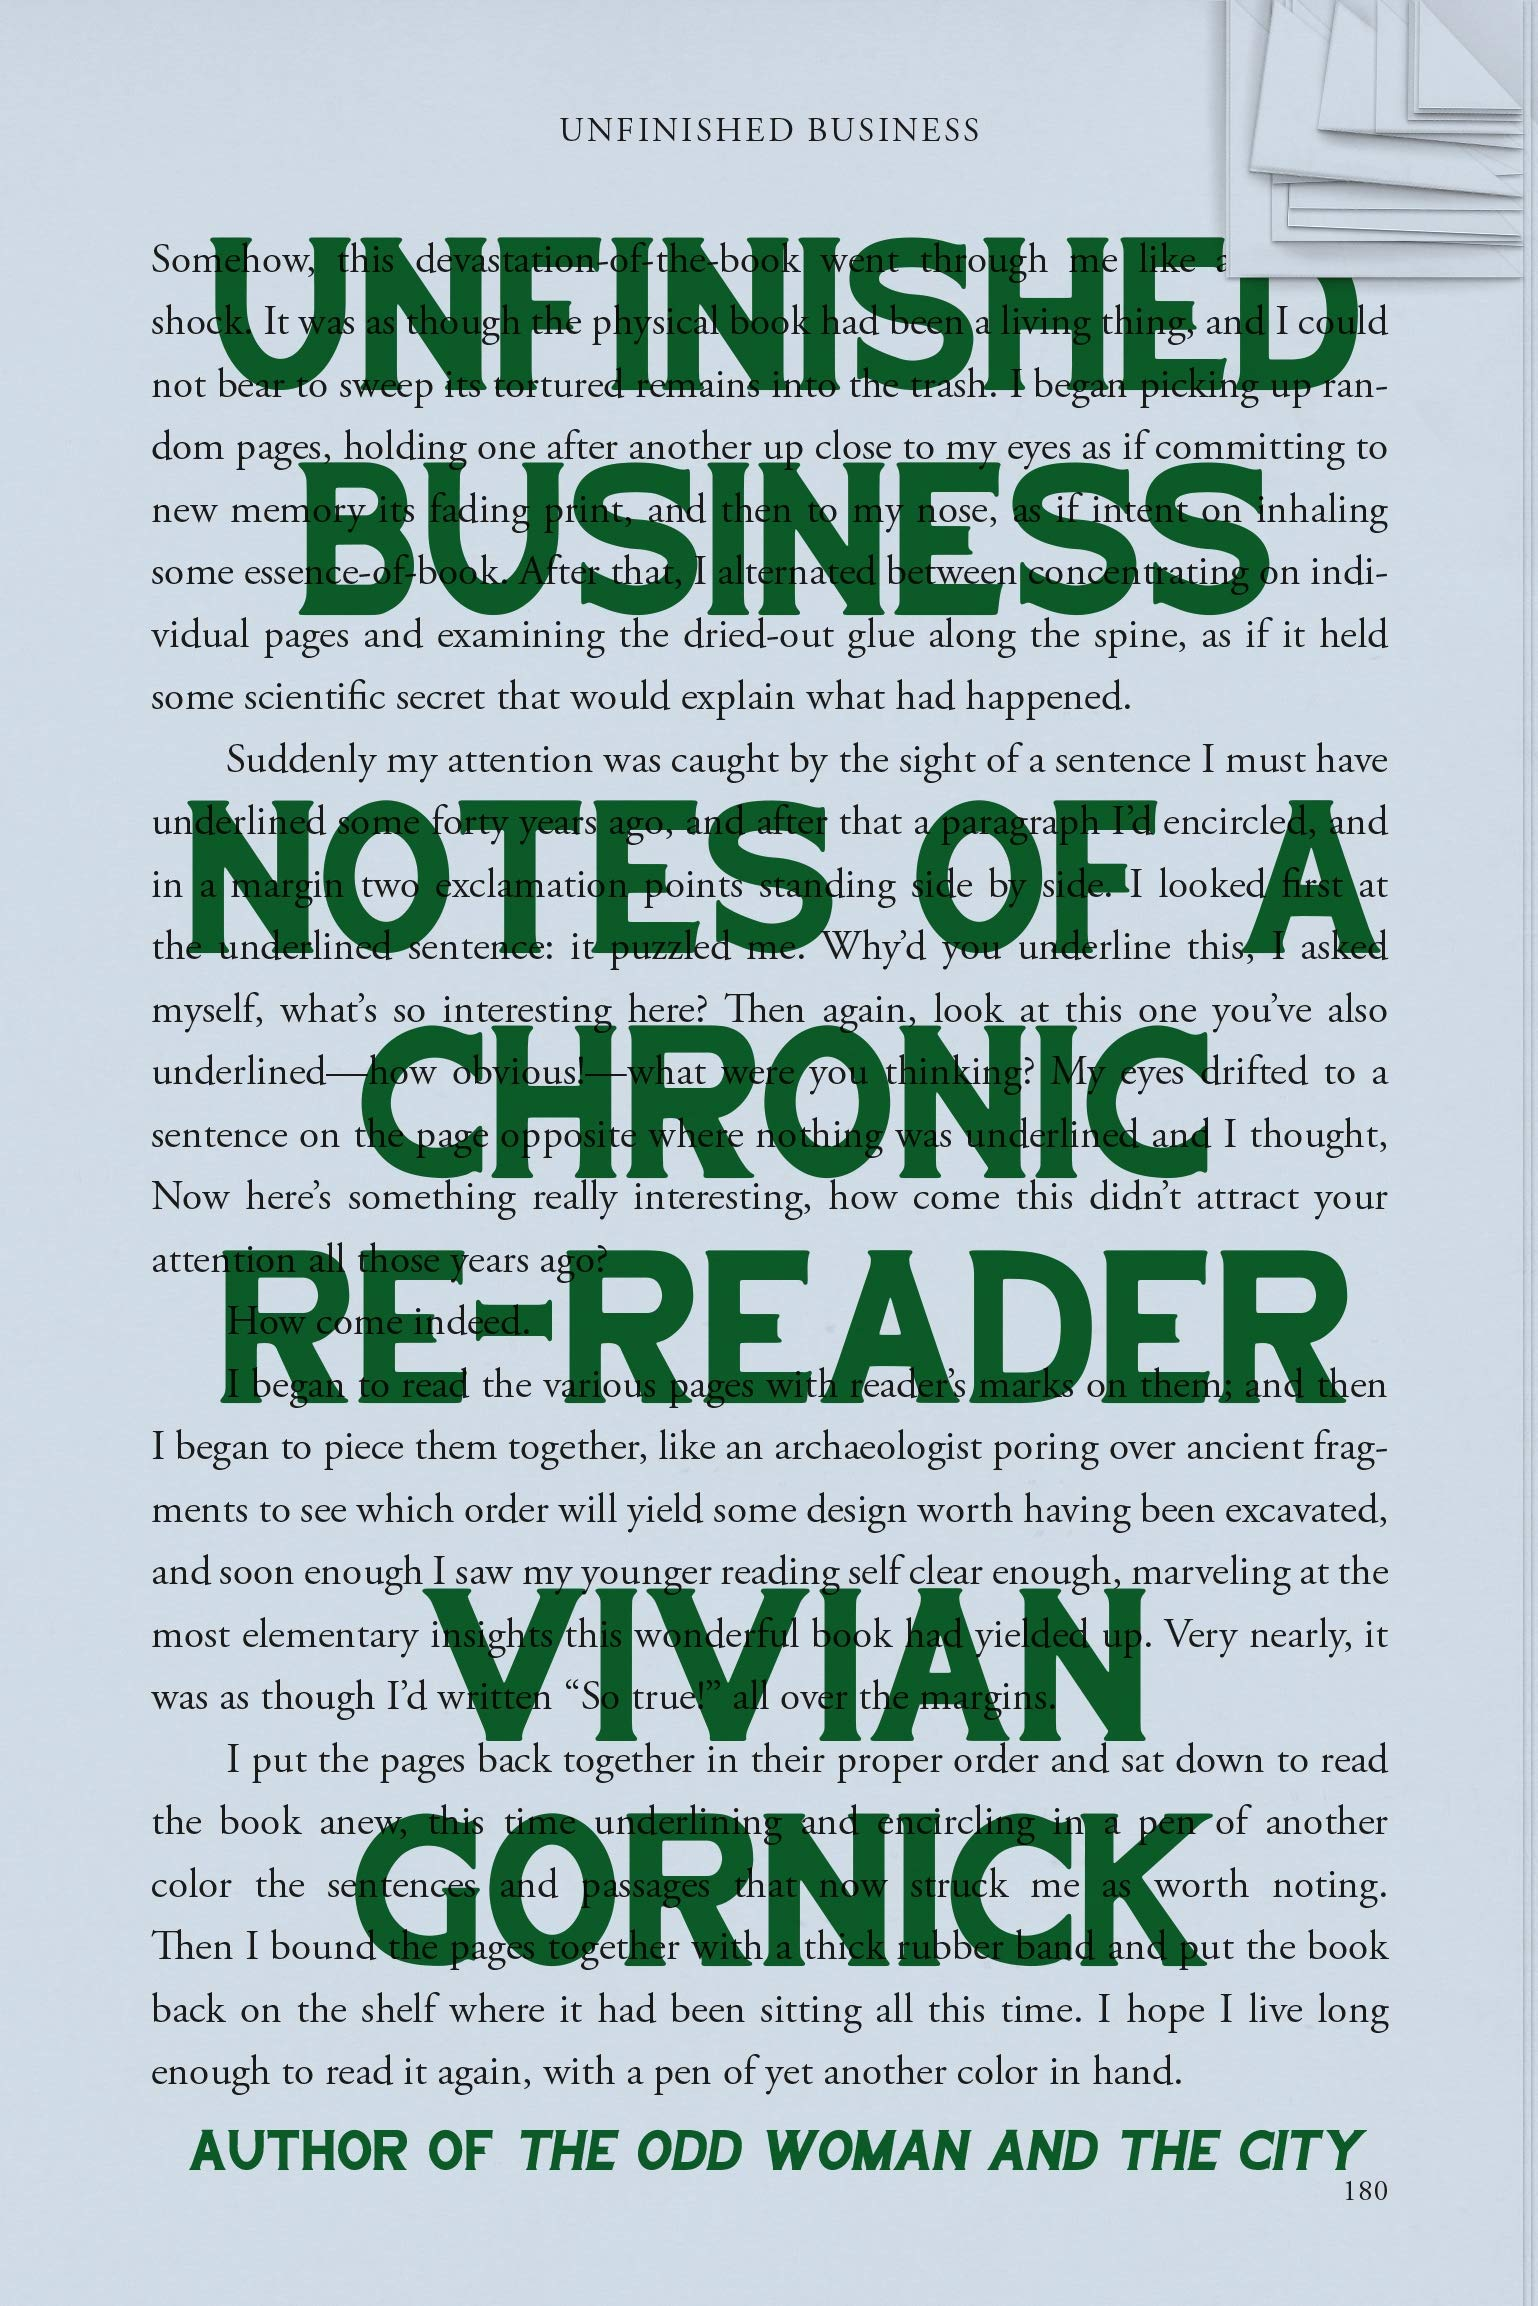 Vivian Gornick book unfinished business